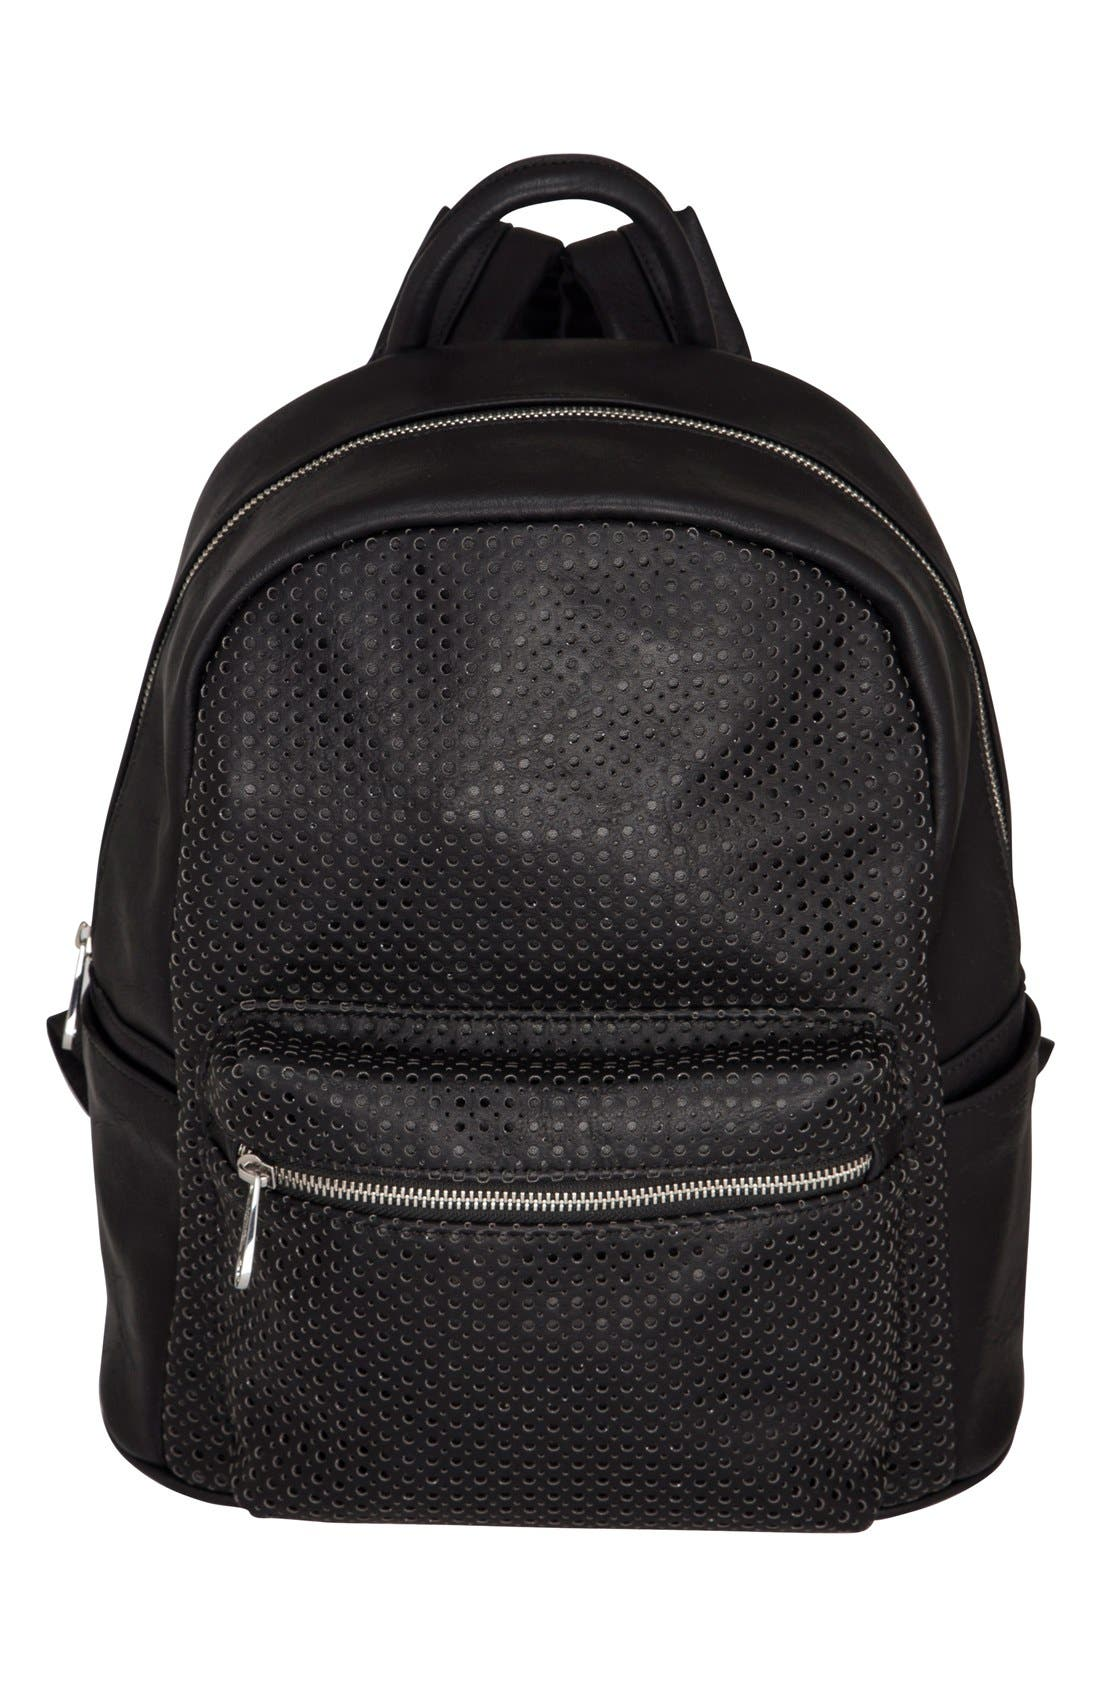 LOLA PERFORATED VEGAN LEATHER BACKPACK - BLACK